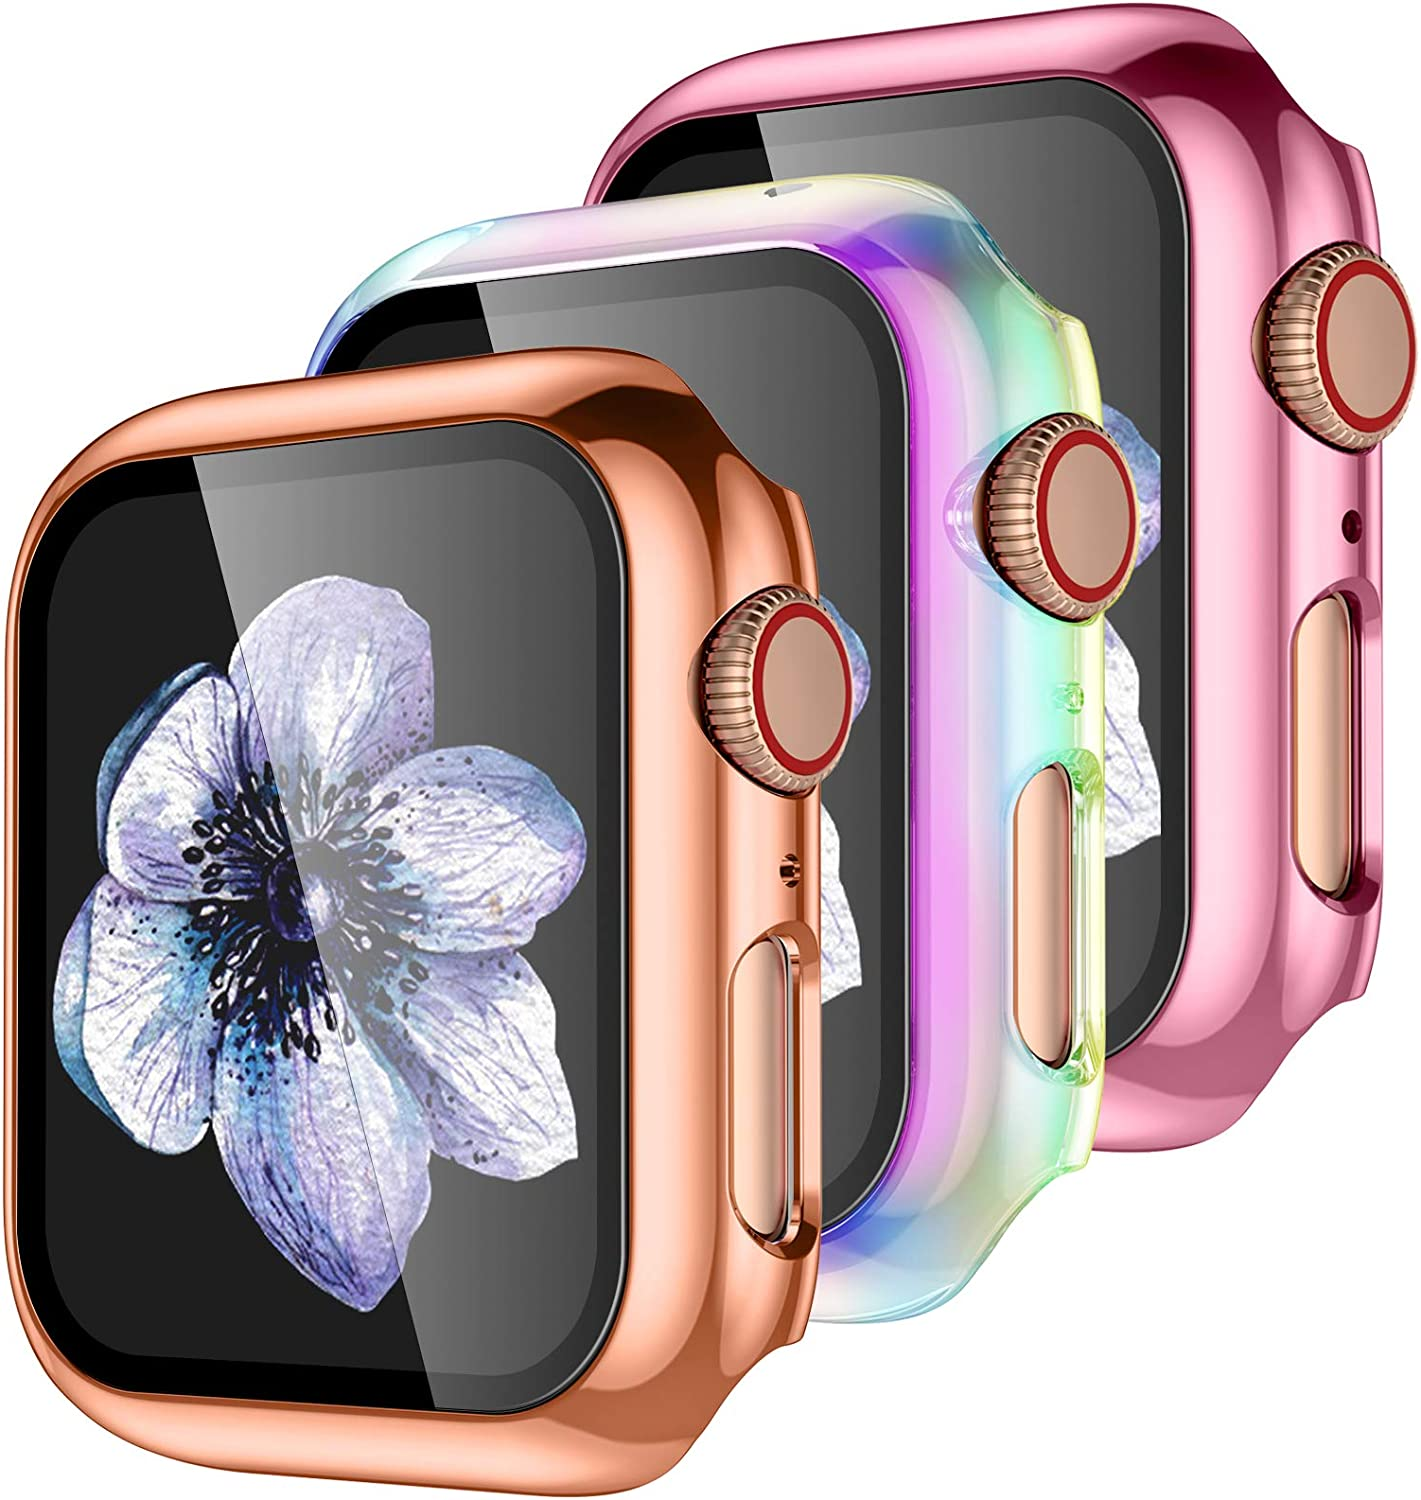 【3 Pack】 Easuny Design for Apple Watch Case 44mm Series 6 SE 5 4 with Built-in Glass Screen Protector - Overall Protective Hard Cover Accessories for iWatch Women Men,Rose-Gold Rose-Pink Colorful